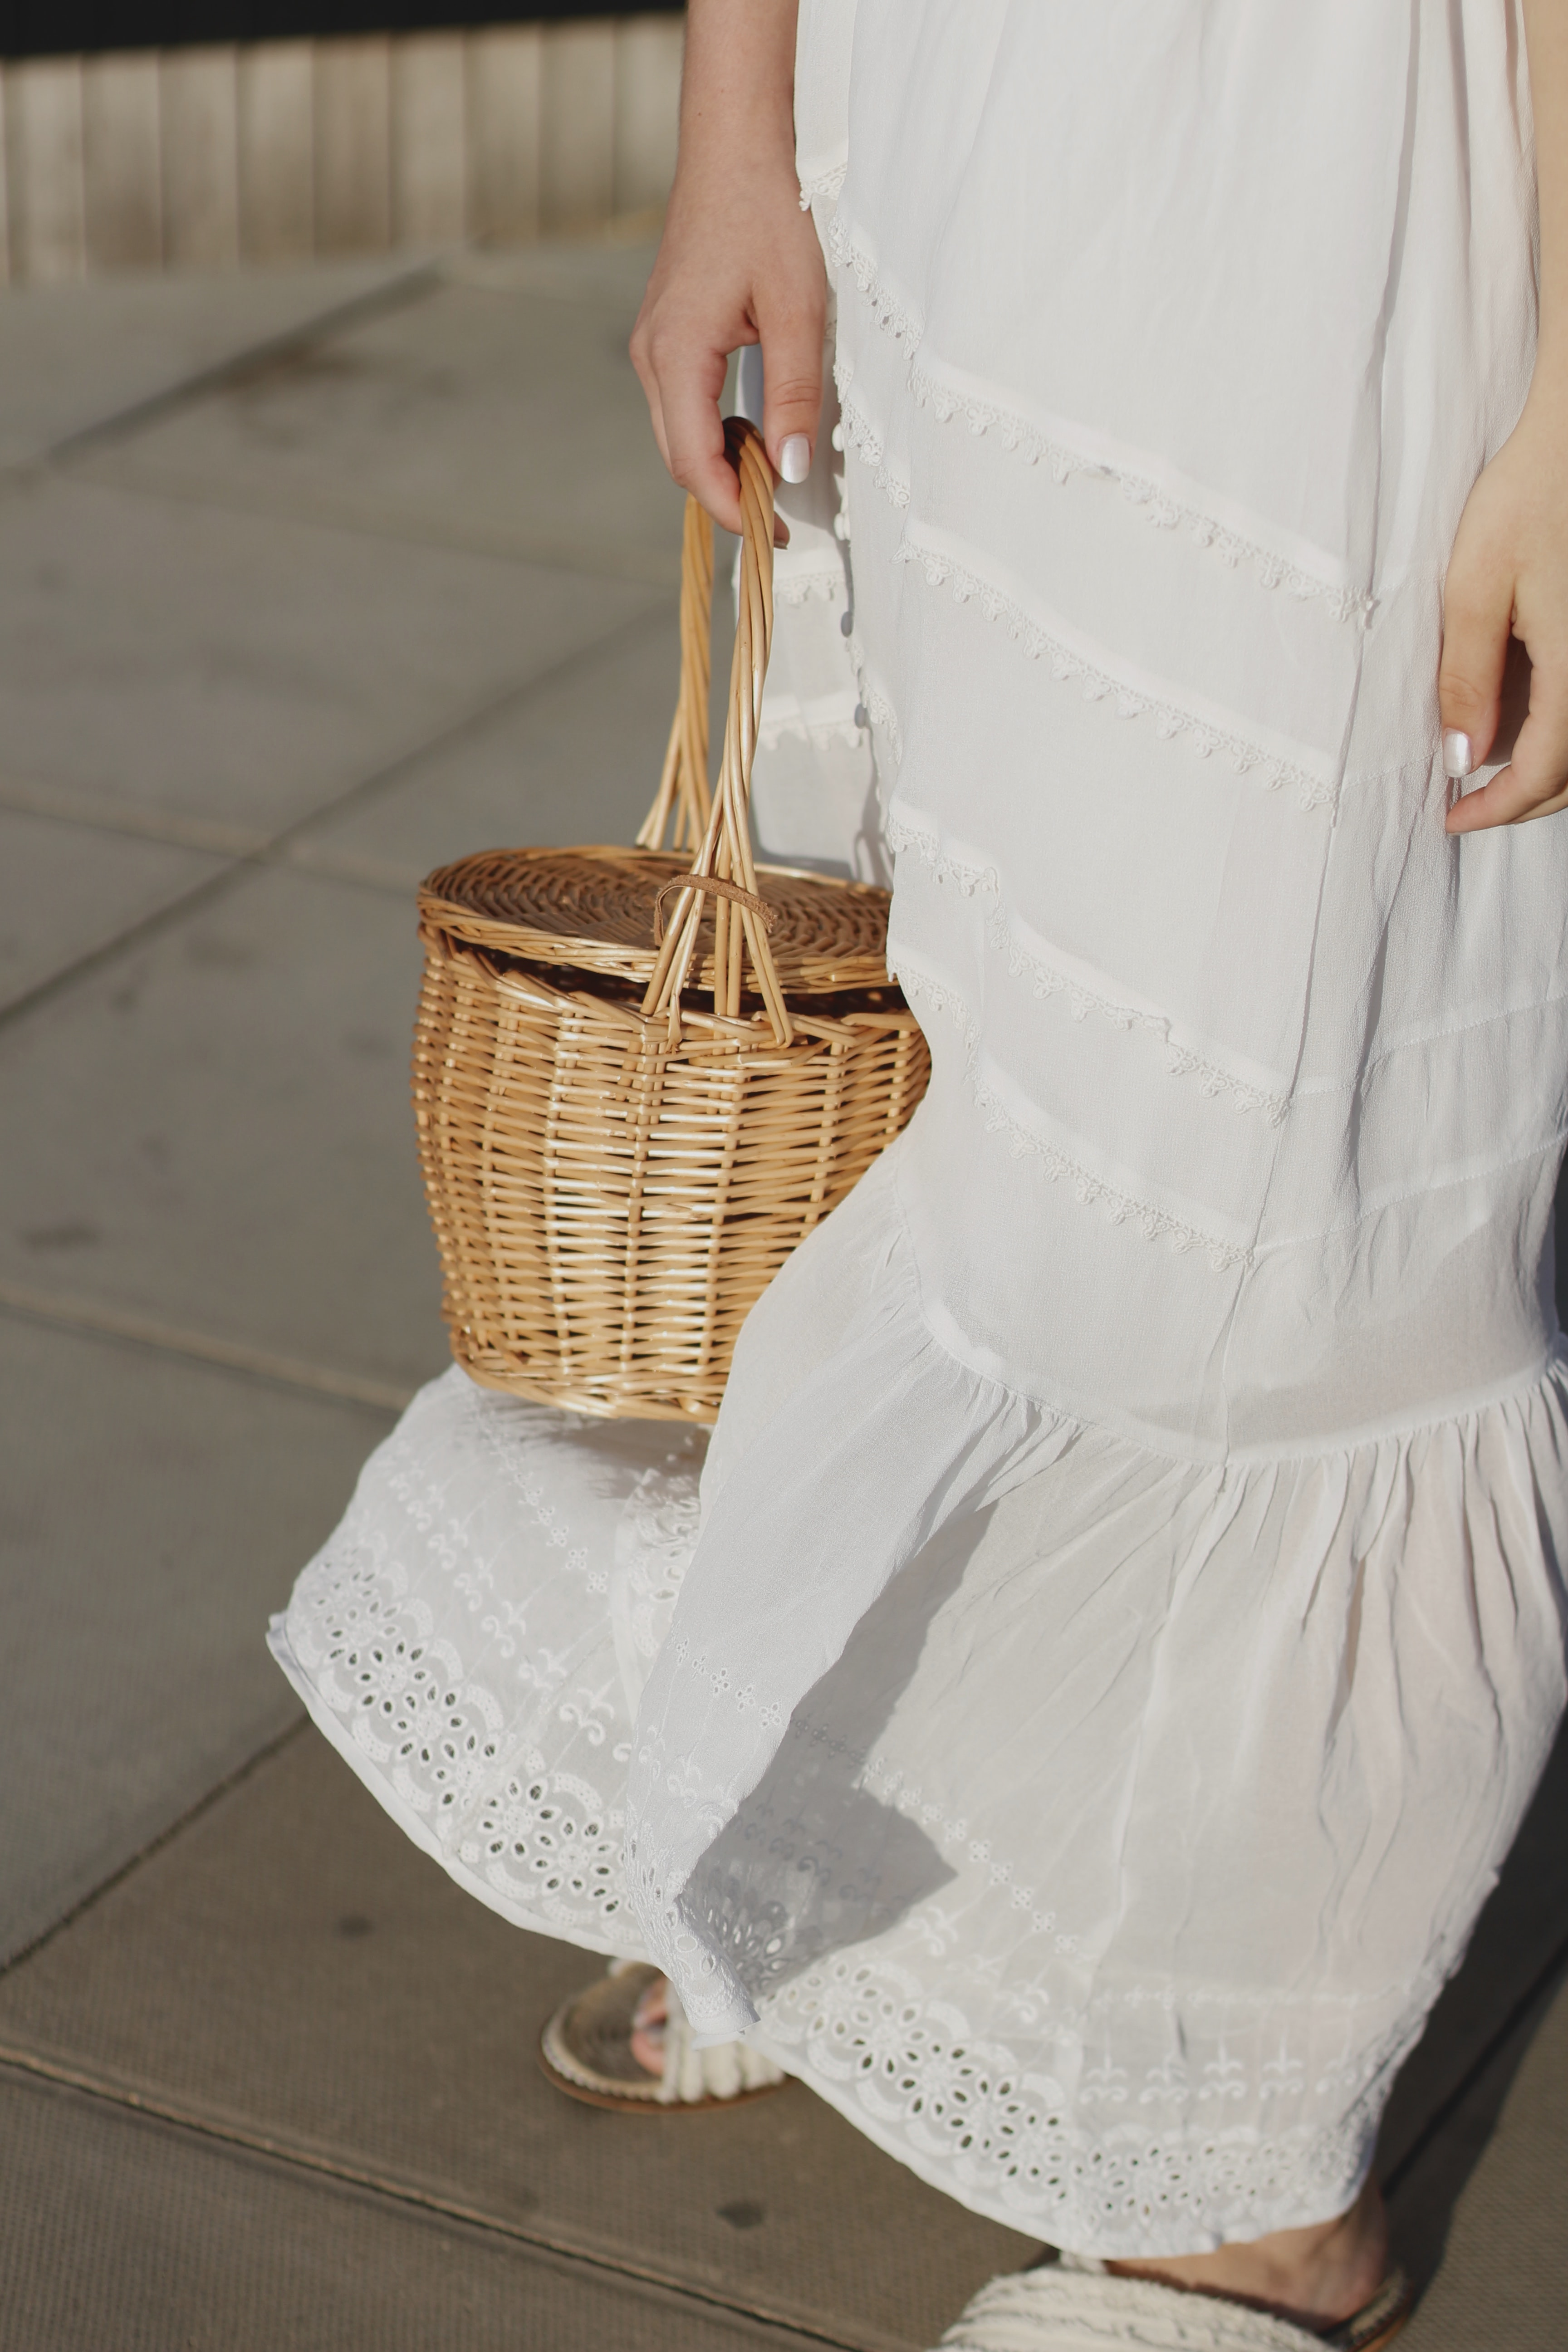 person holding brown wicker basket